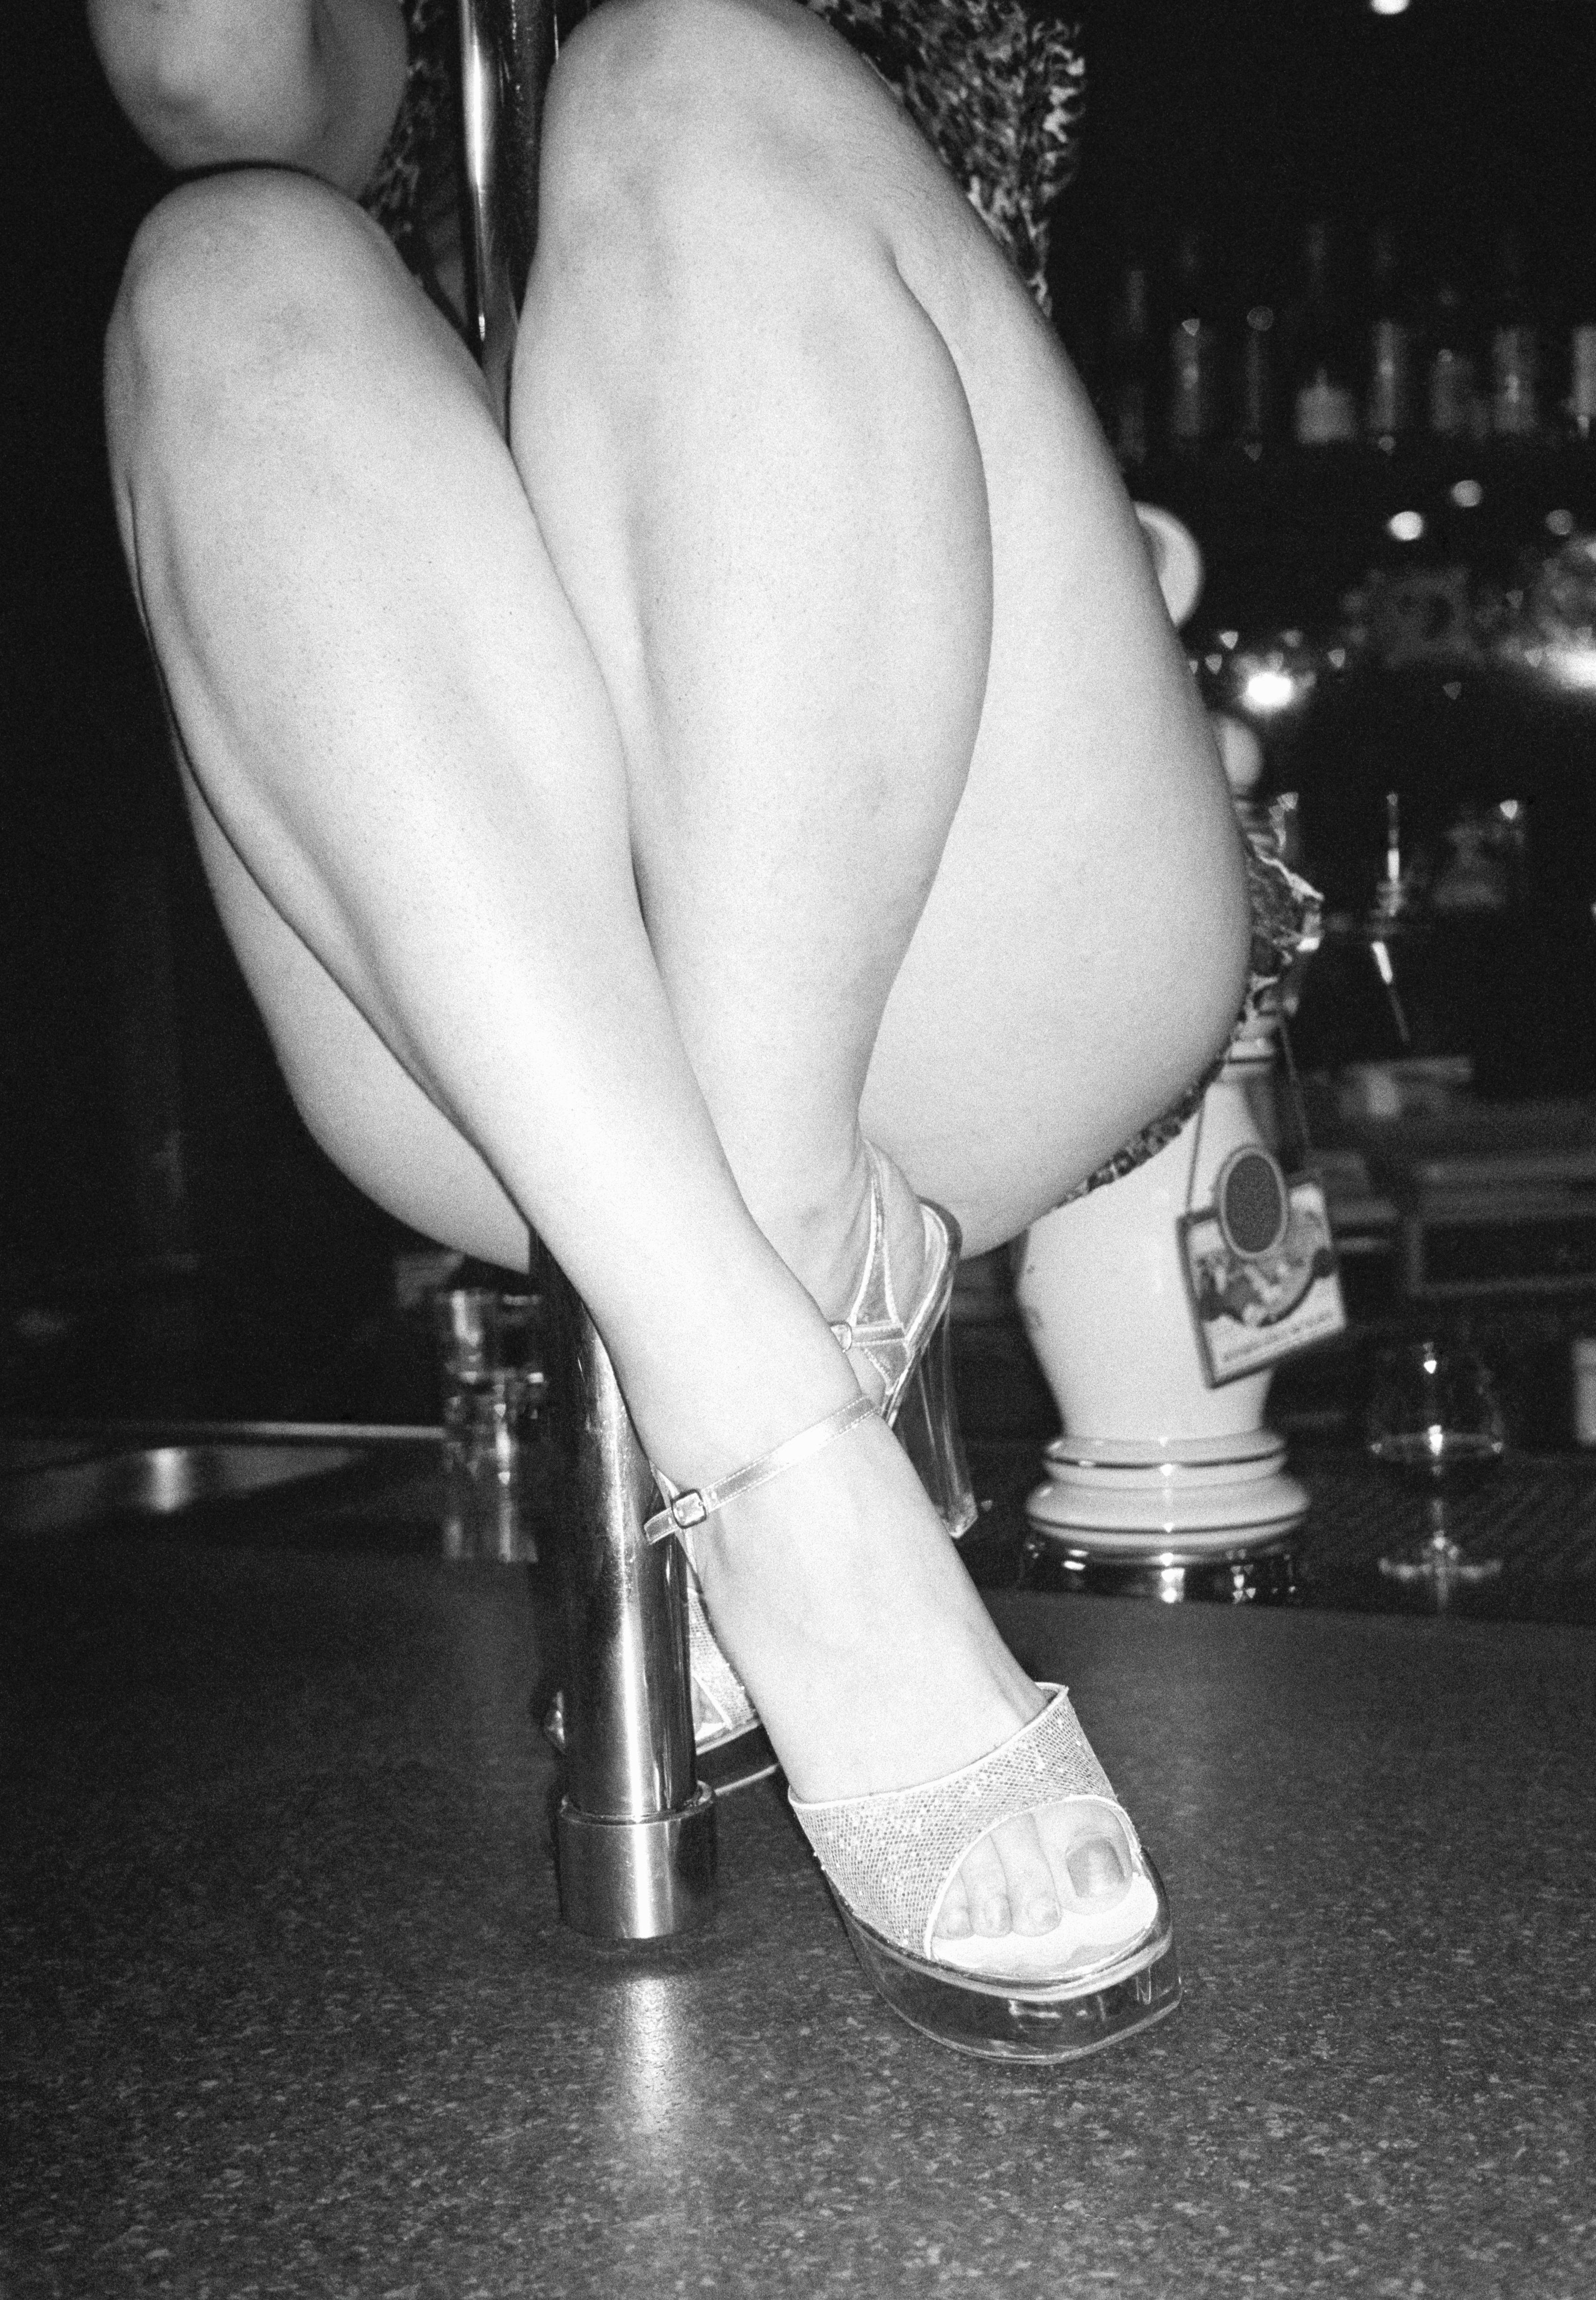 Woman pole dancing on bar counter